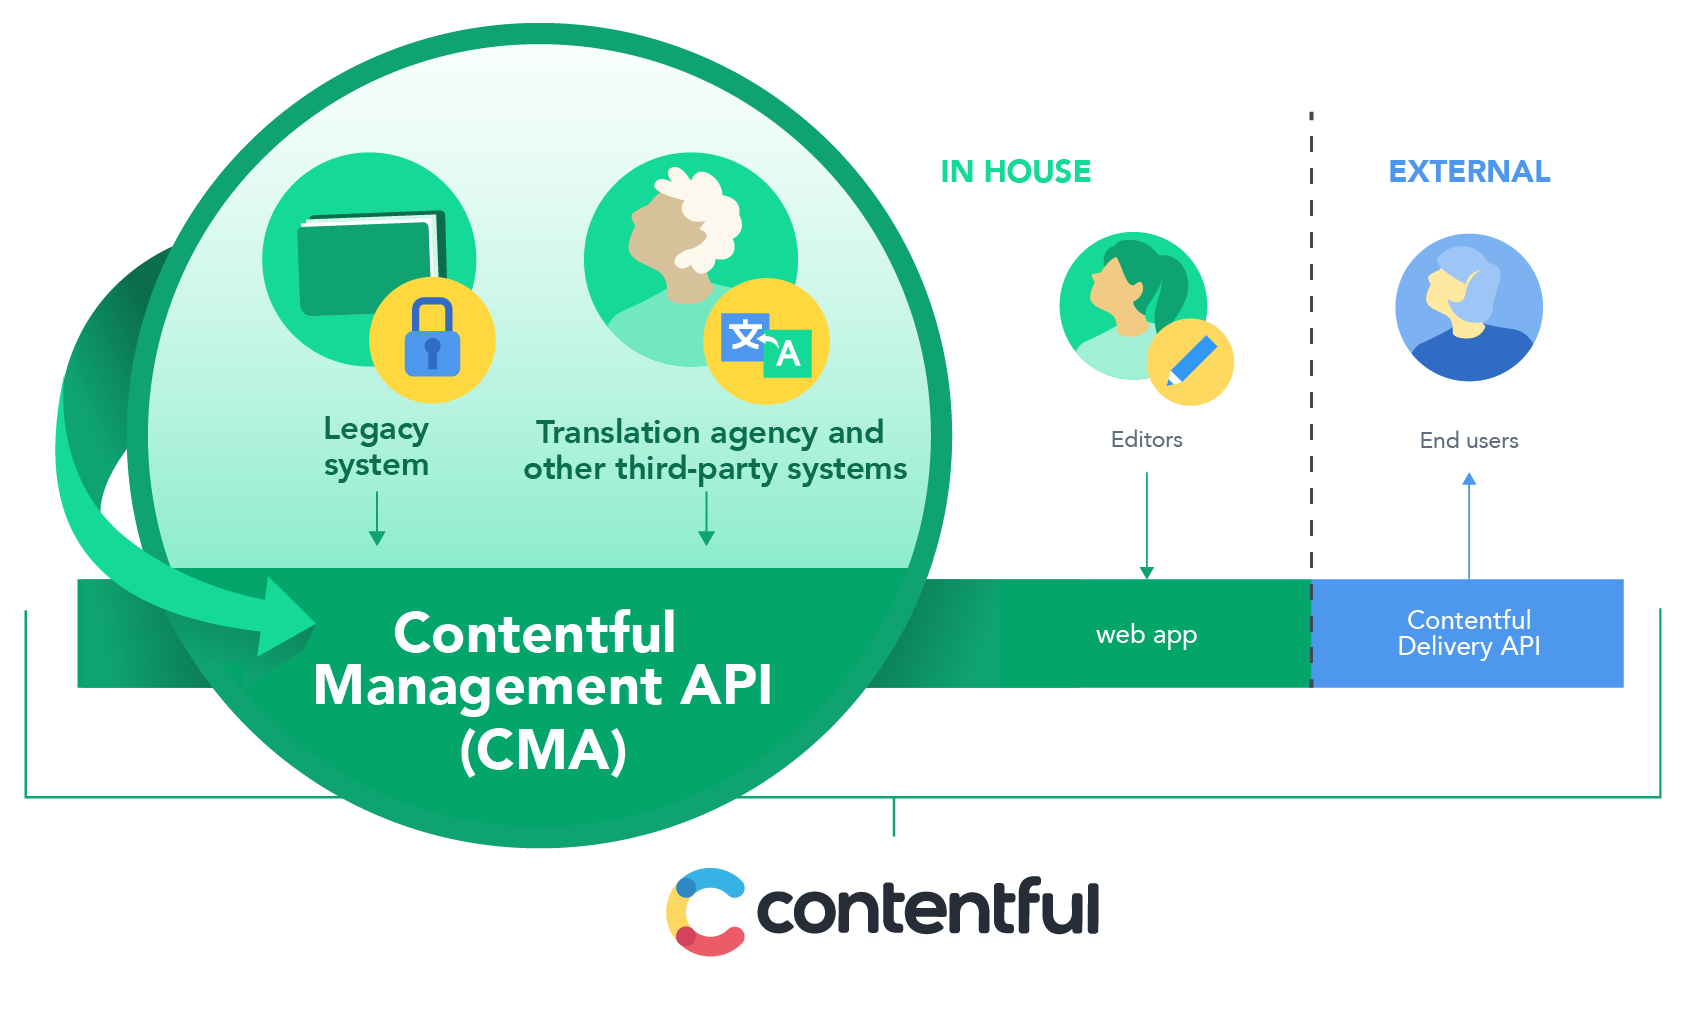 Contentful Management API